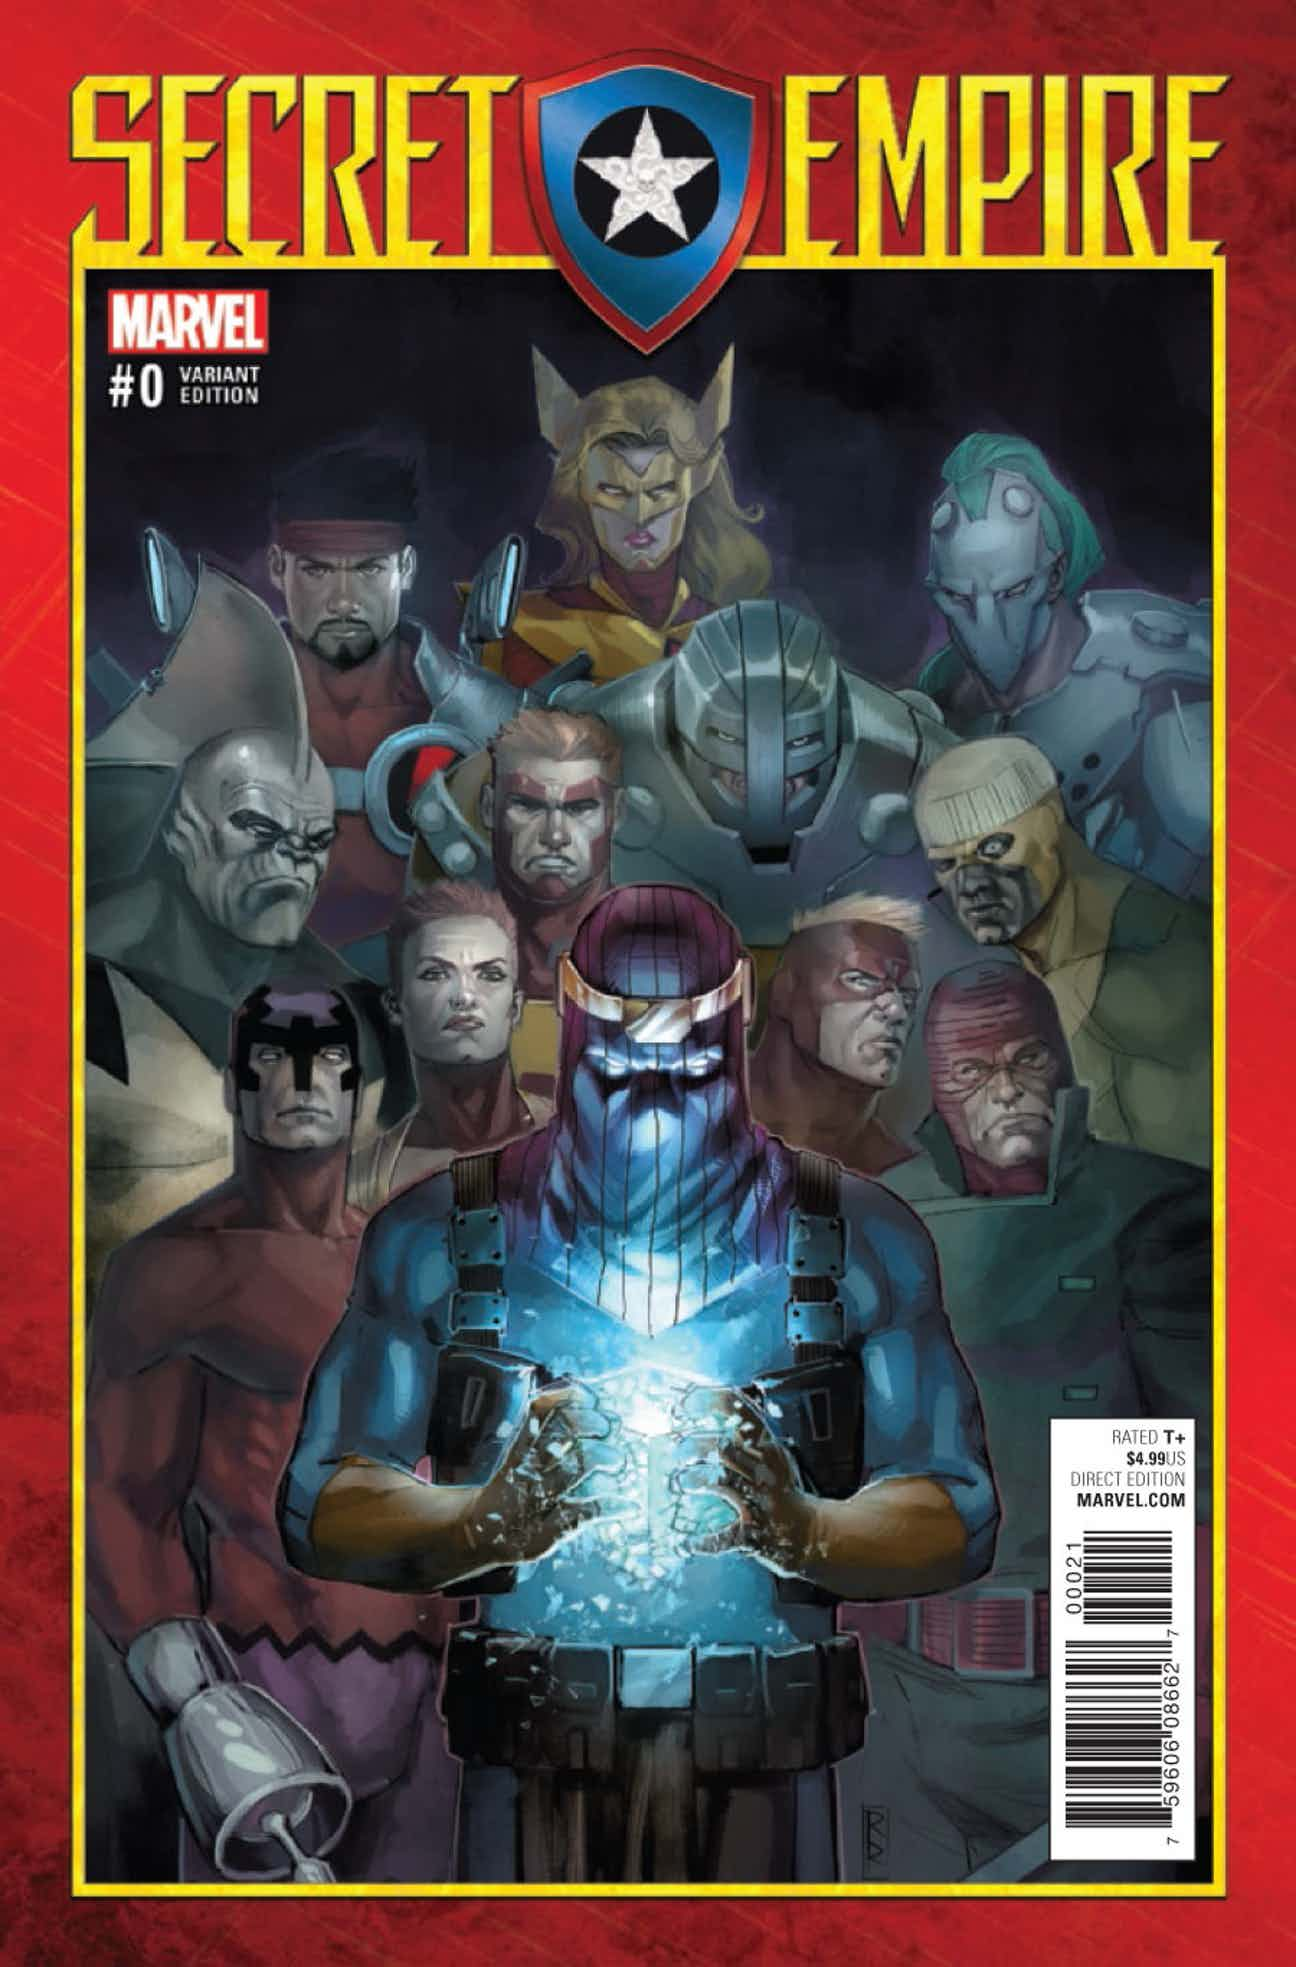 Secret Empire Vol 1 0 Reis Variant.jpg